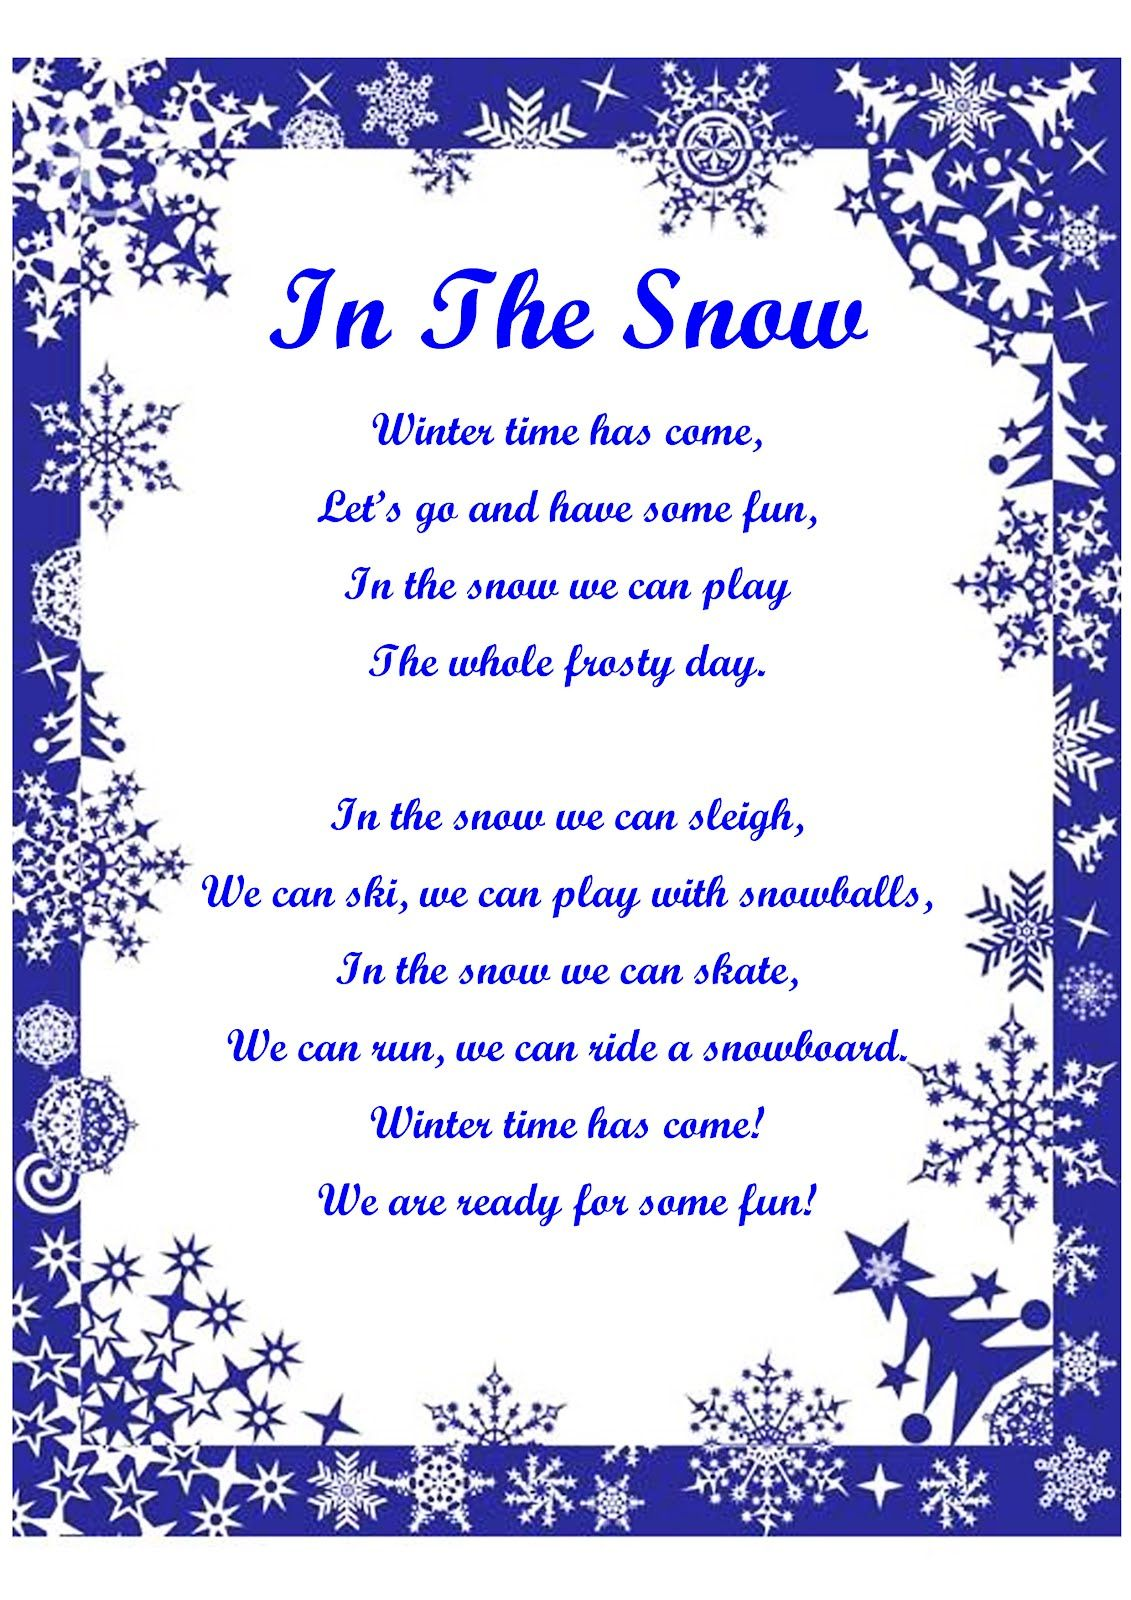 winter words Winter Song about Merry Frosty Days Snow